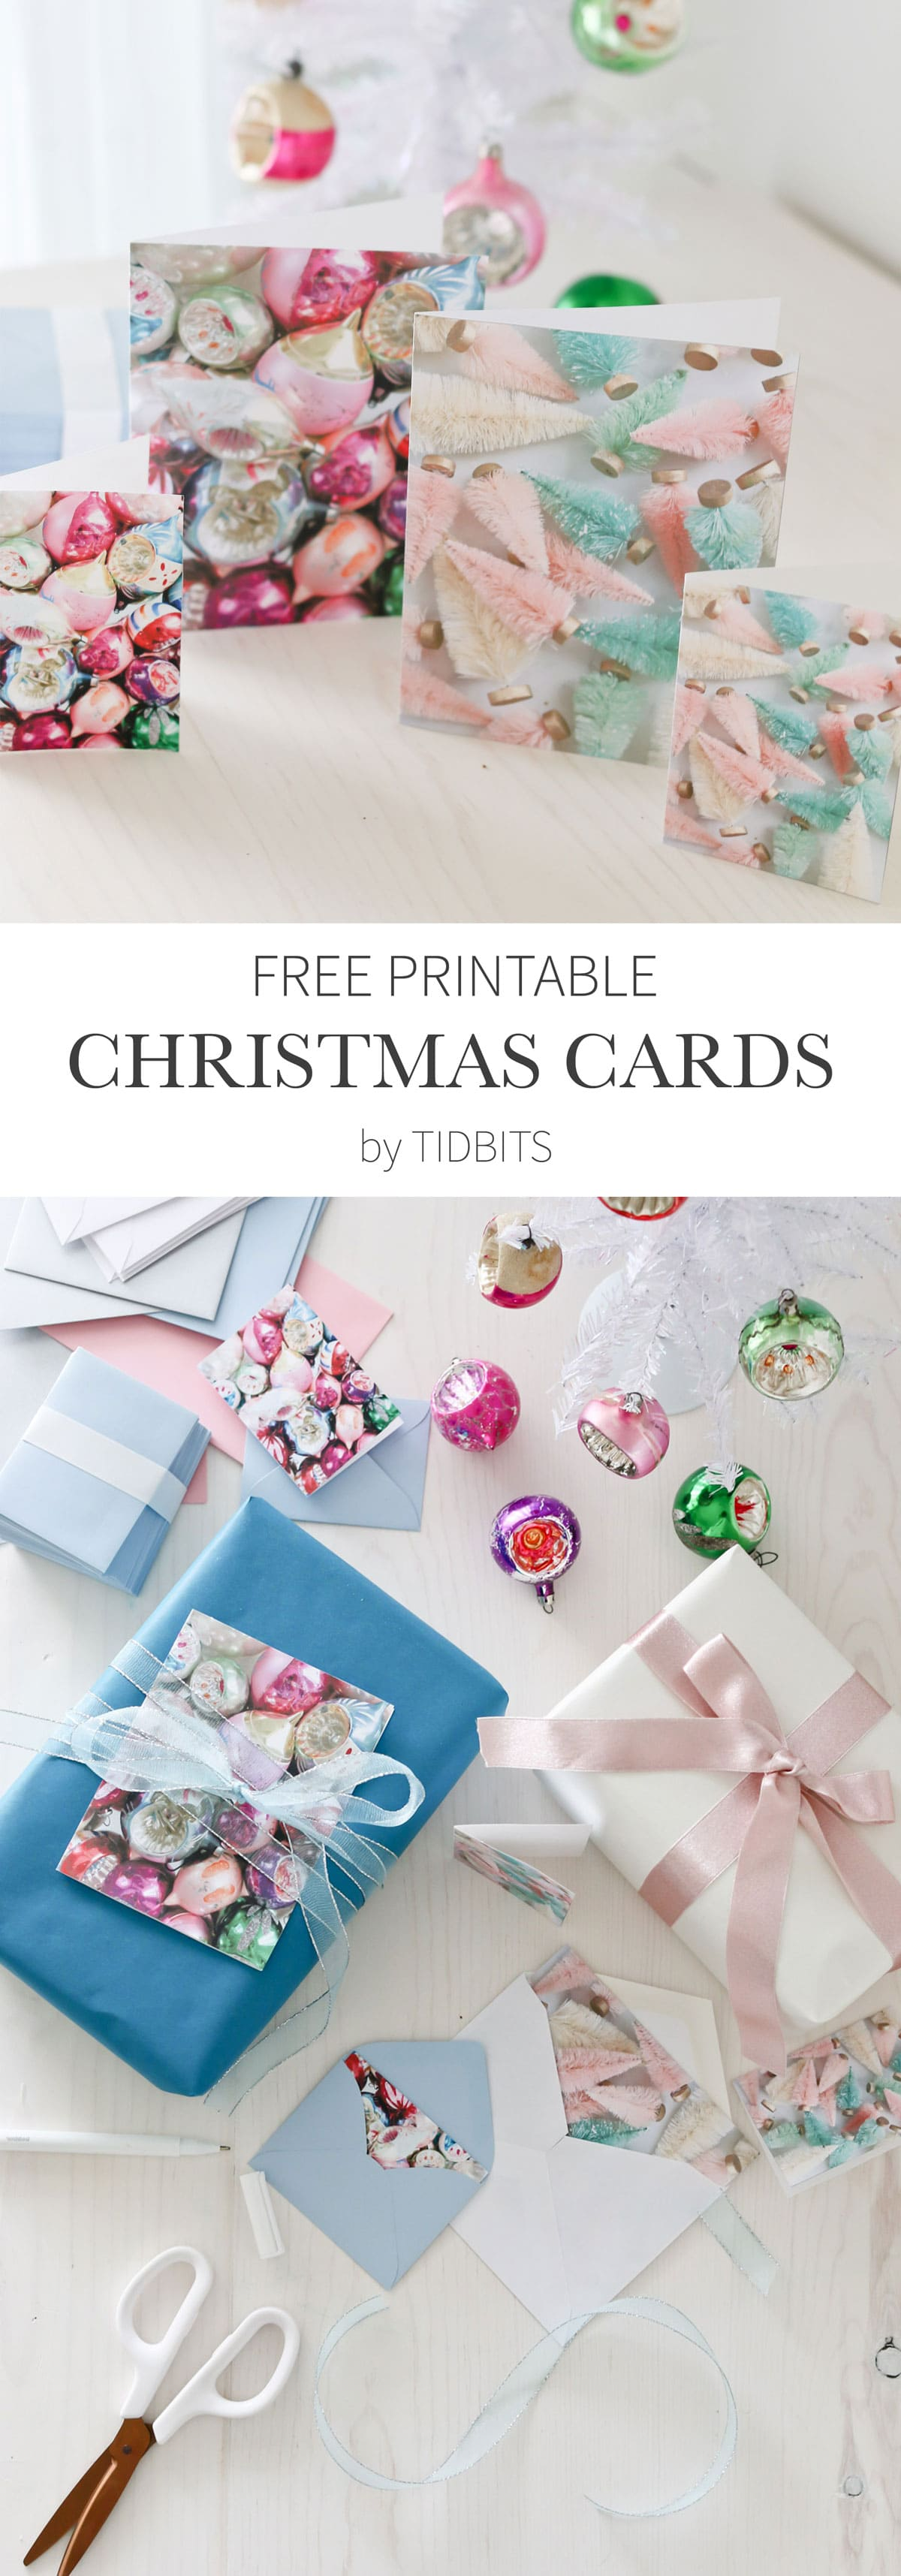 Free Printable Colorful Christmas Cards by TIDBITS